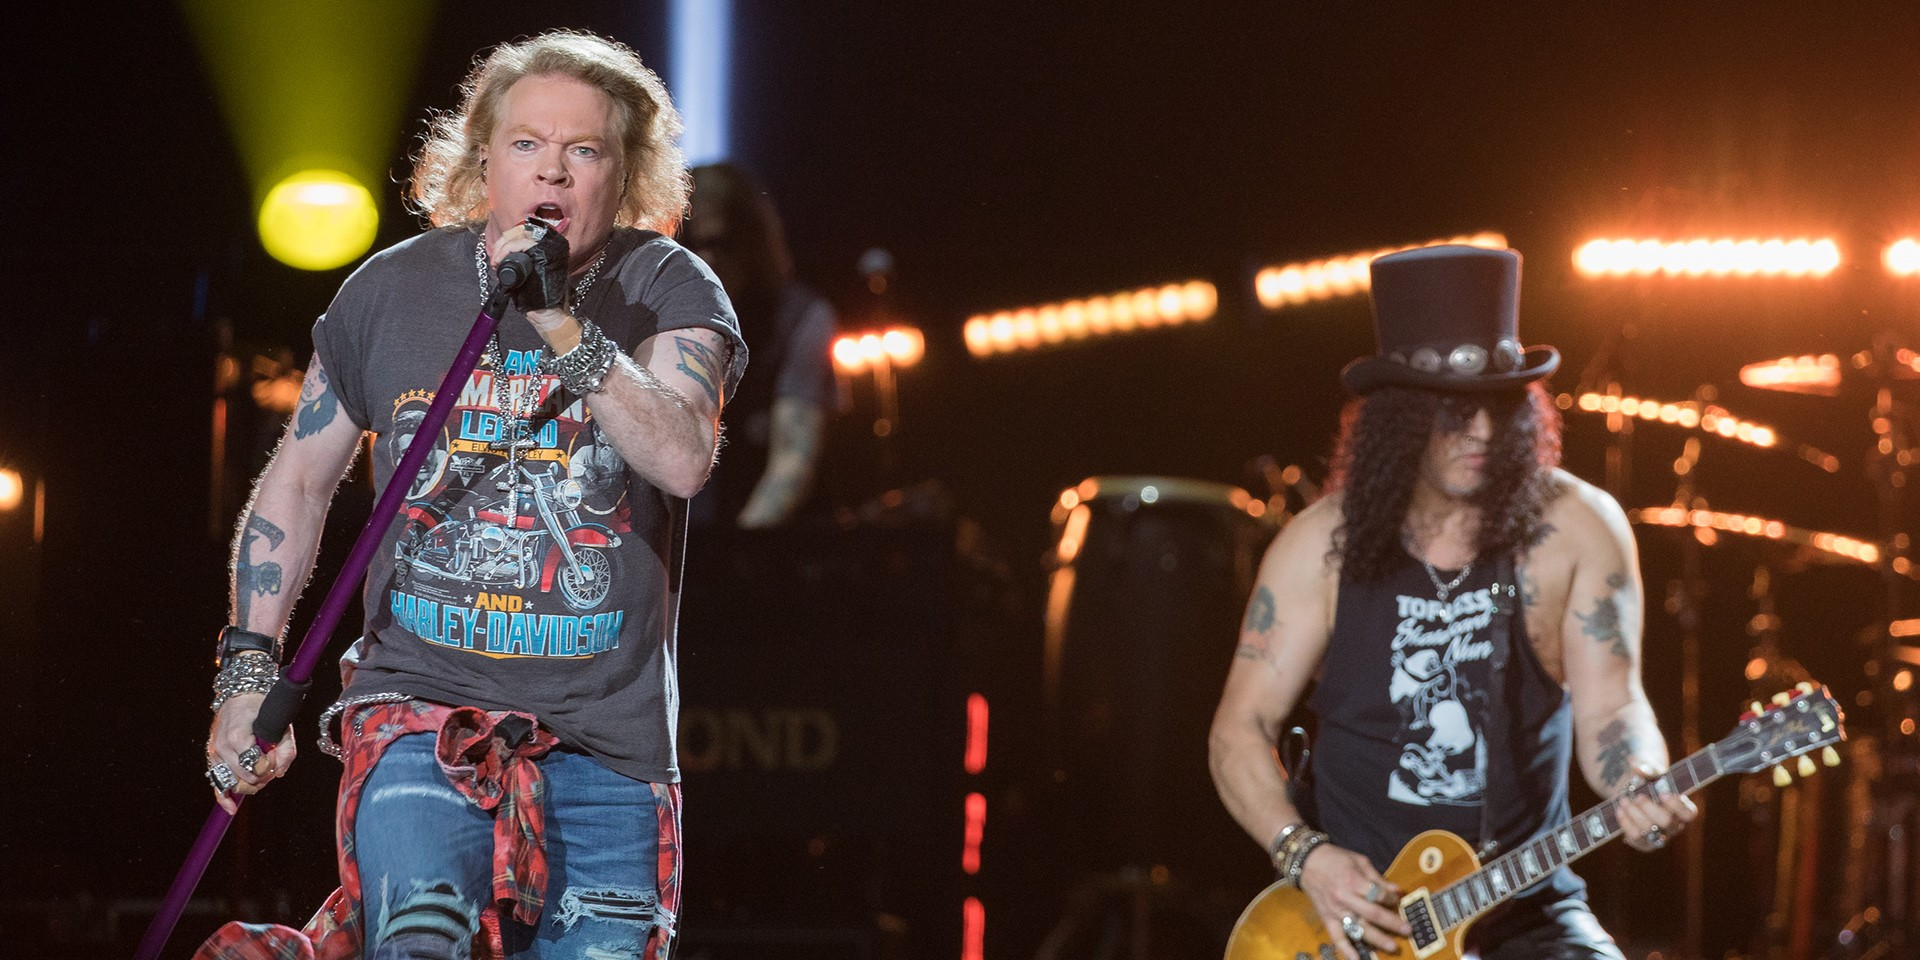 GIG REPORT: Guns N' Roses defy expectations with thrilling first show in Singapore